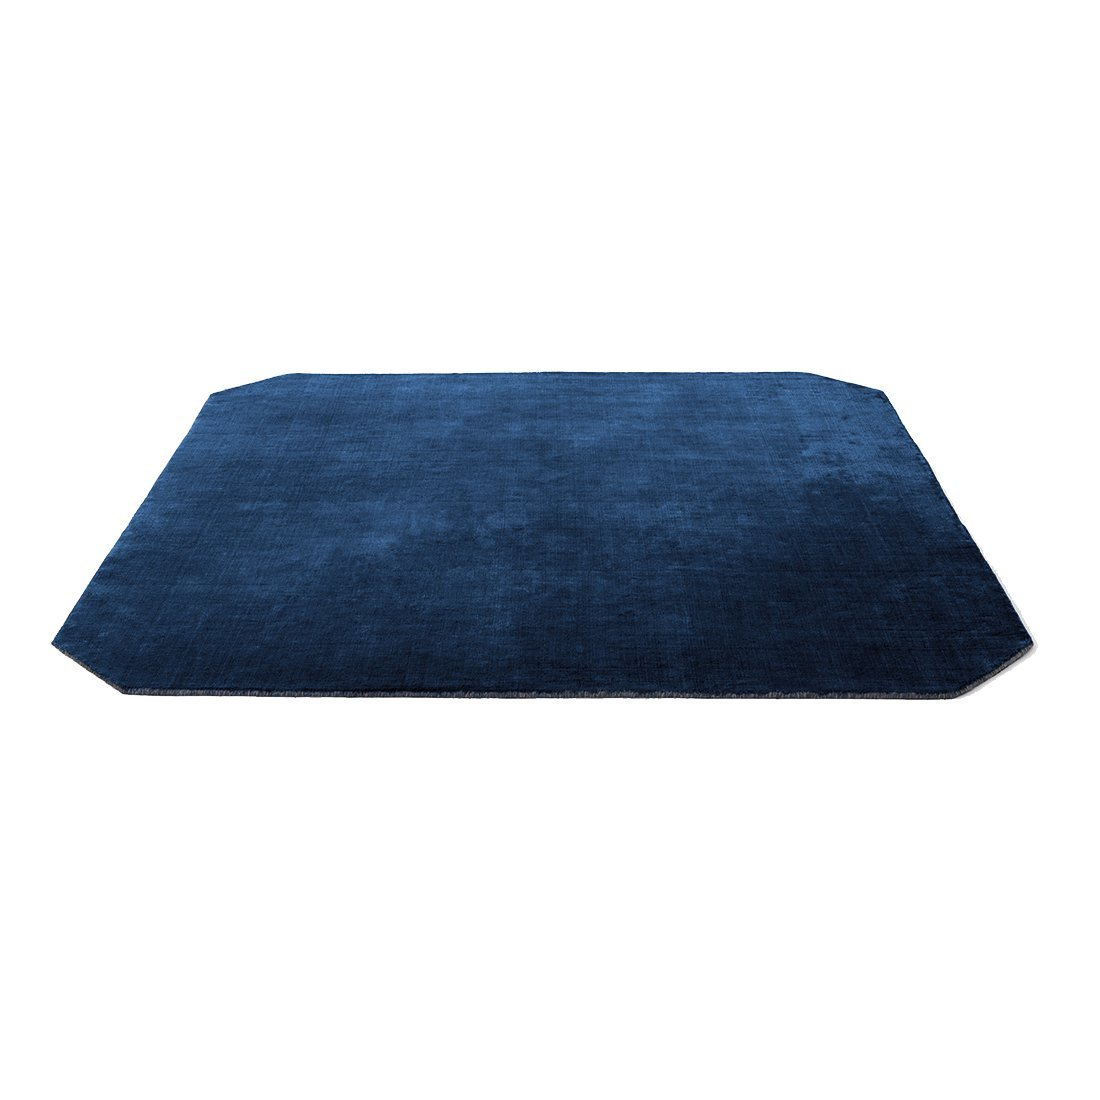 &Tradition The Moor AP6 Vloerkleed - Blue Midnight